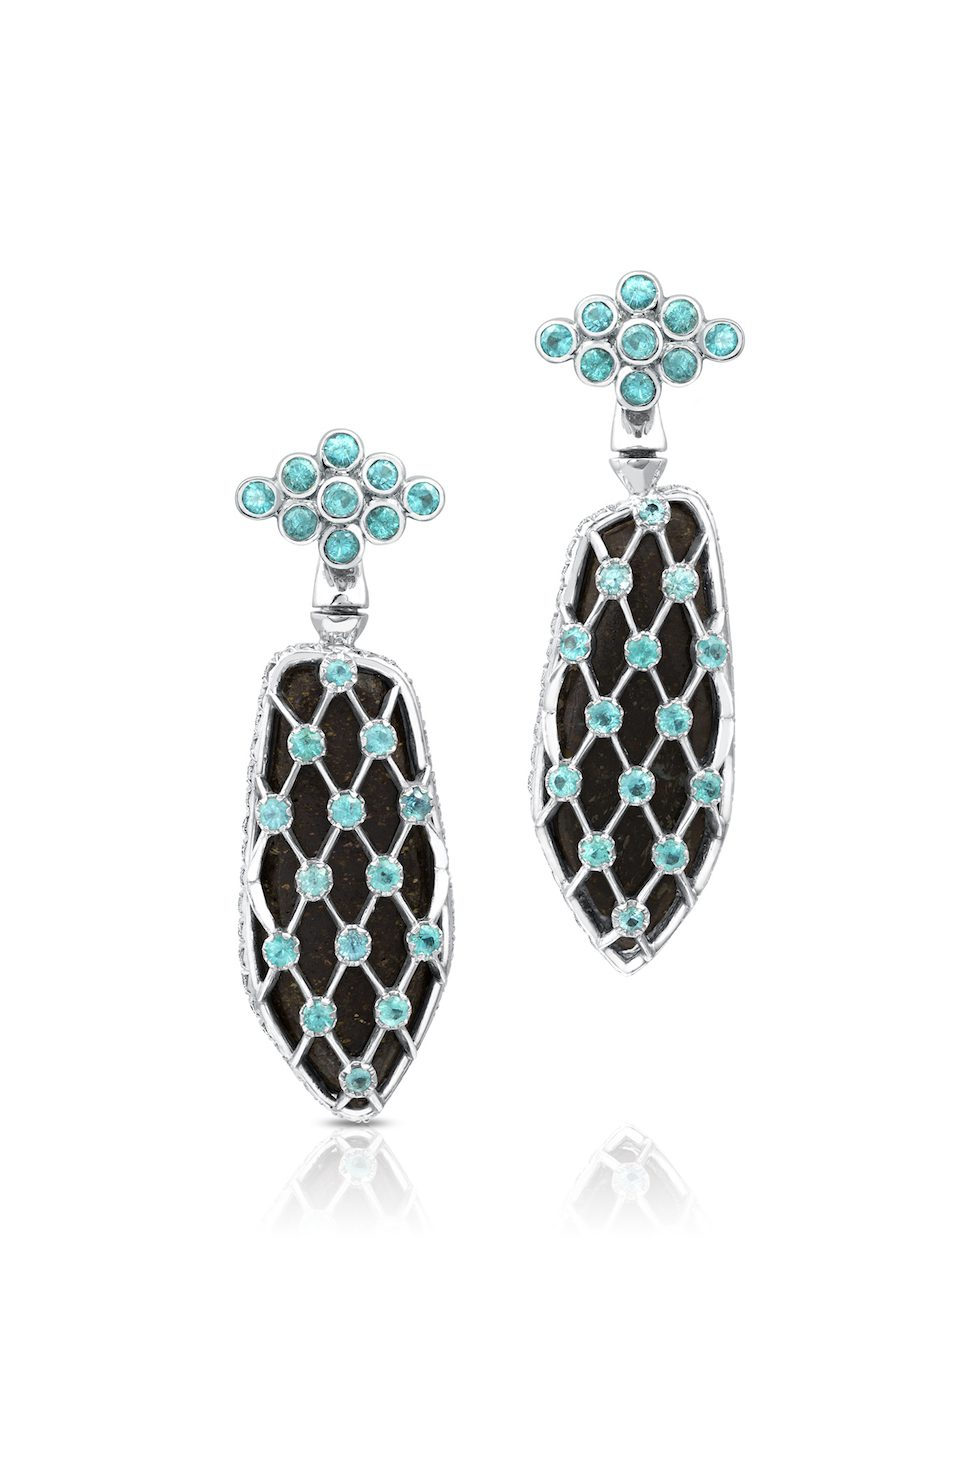 gem trends - reversible opal earrings. back